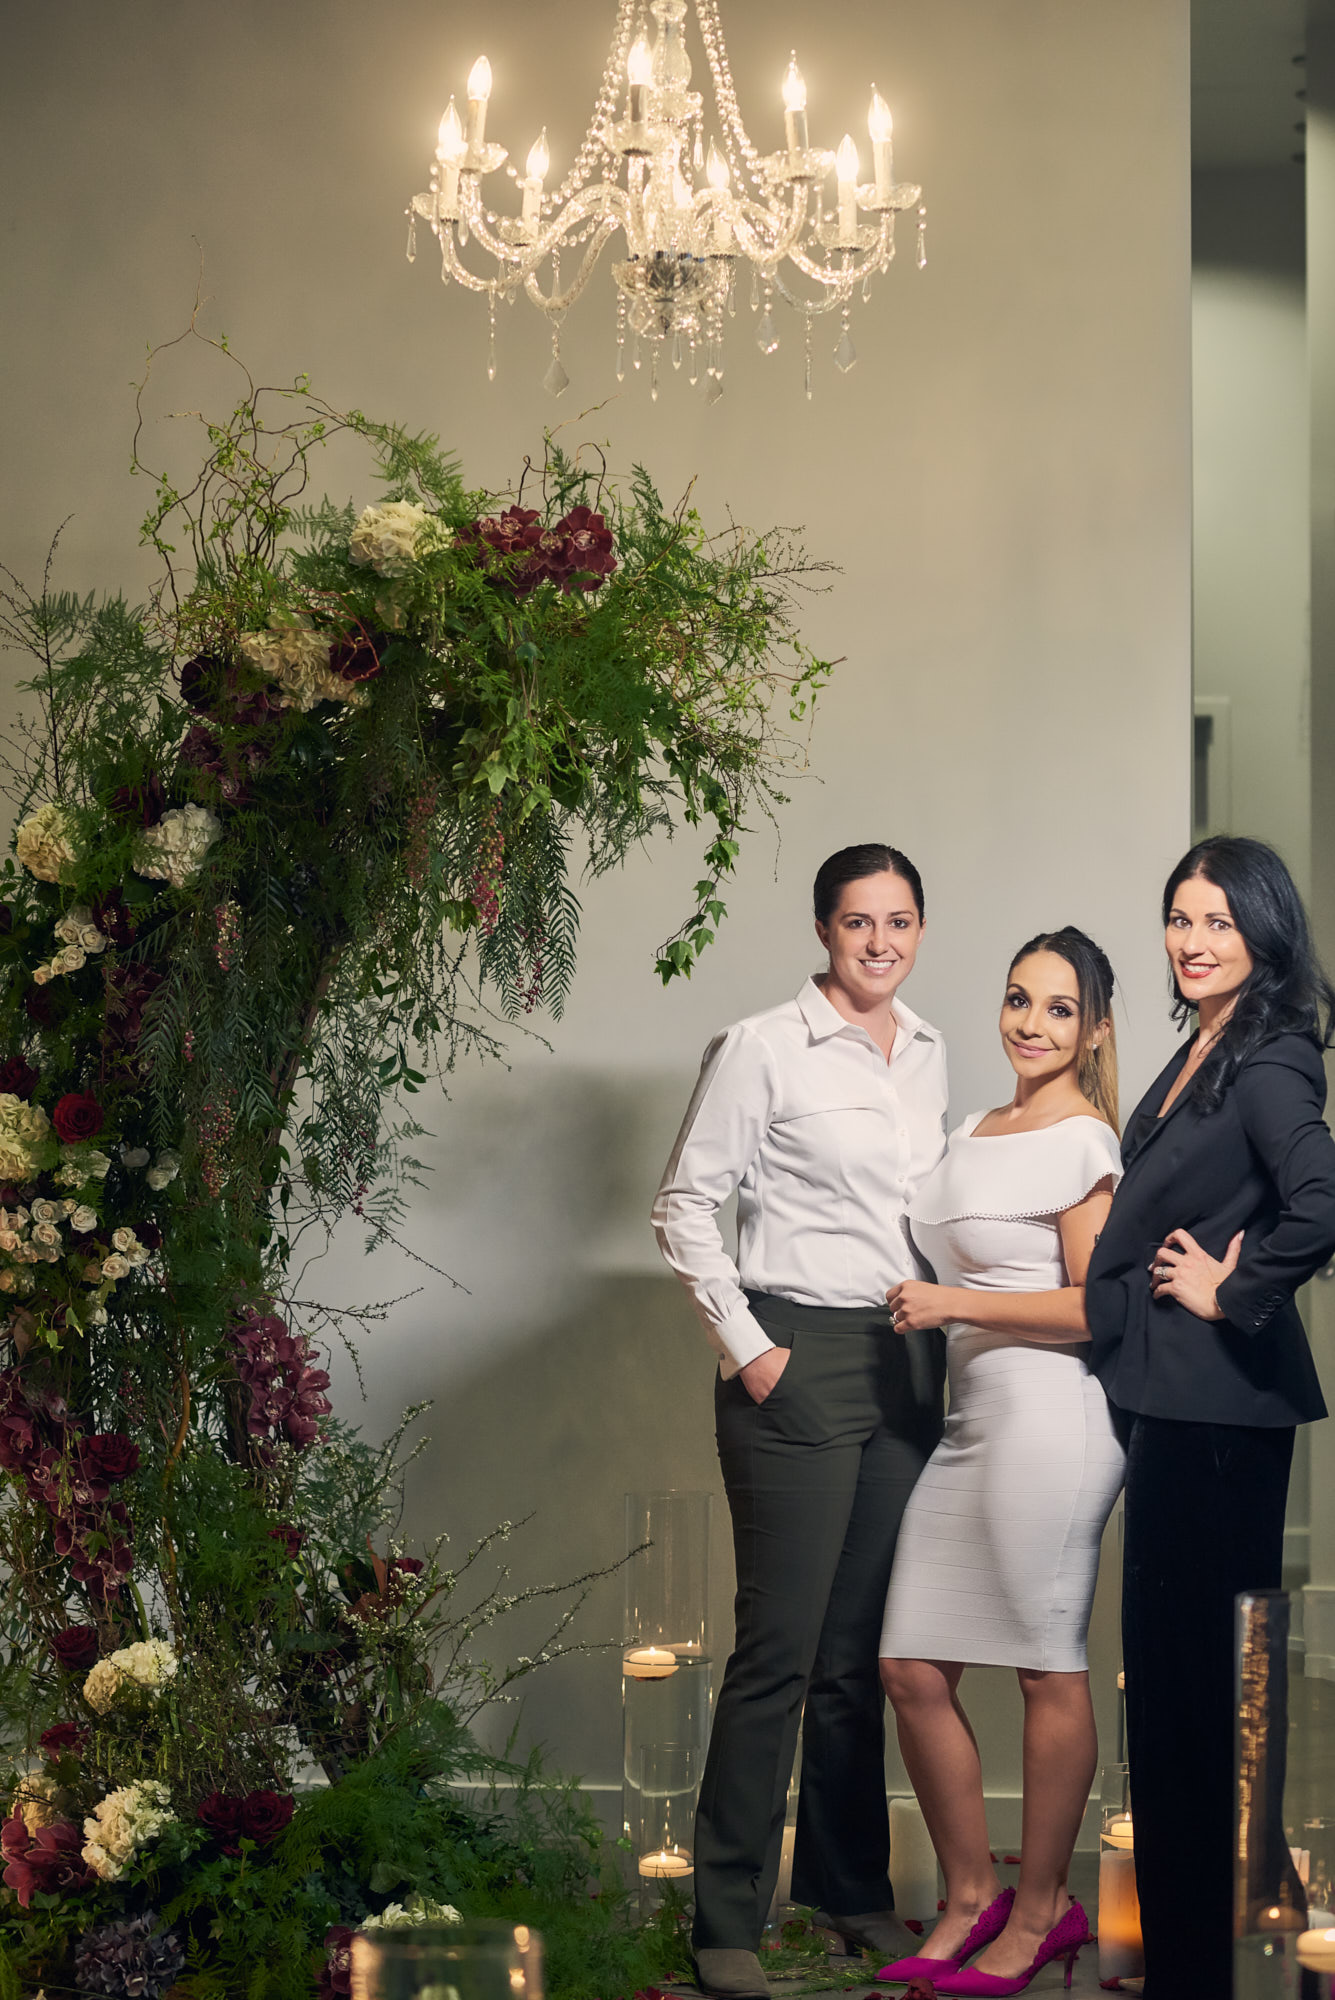 Two brides with Proposal Planner Andrea Eppolito.  Las Vegas Wedding Planner Andrea Eppolito designed the surprise engagement at the Mandarin Oriental for two brides to be.  Decor and lighting by Flora Couture and LED Unplugged, with photos by Fabio and Adri.